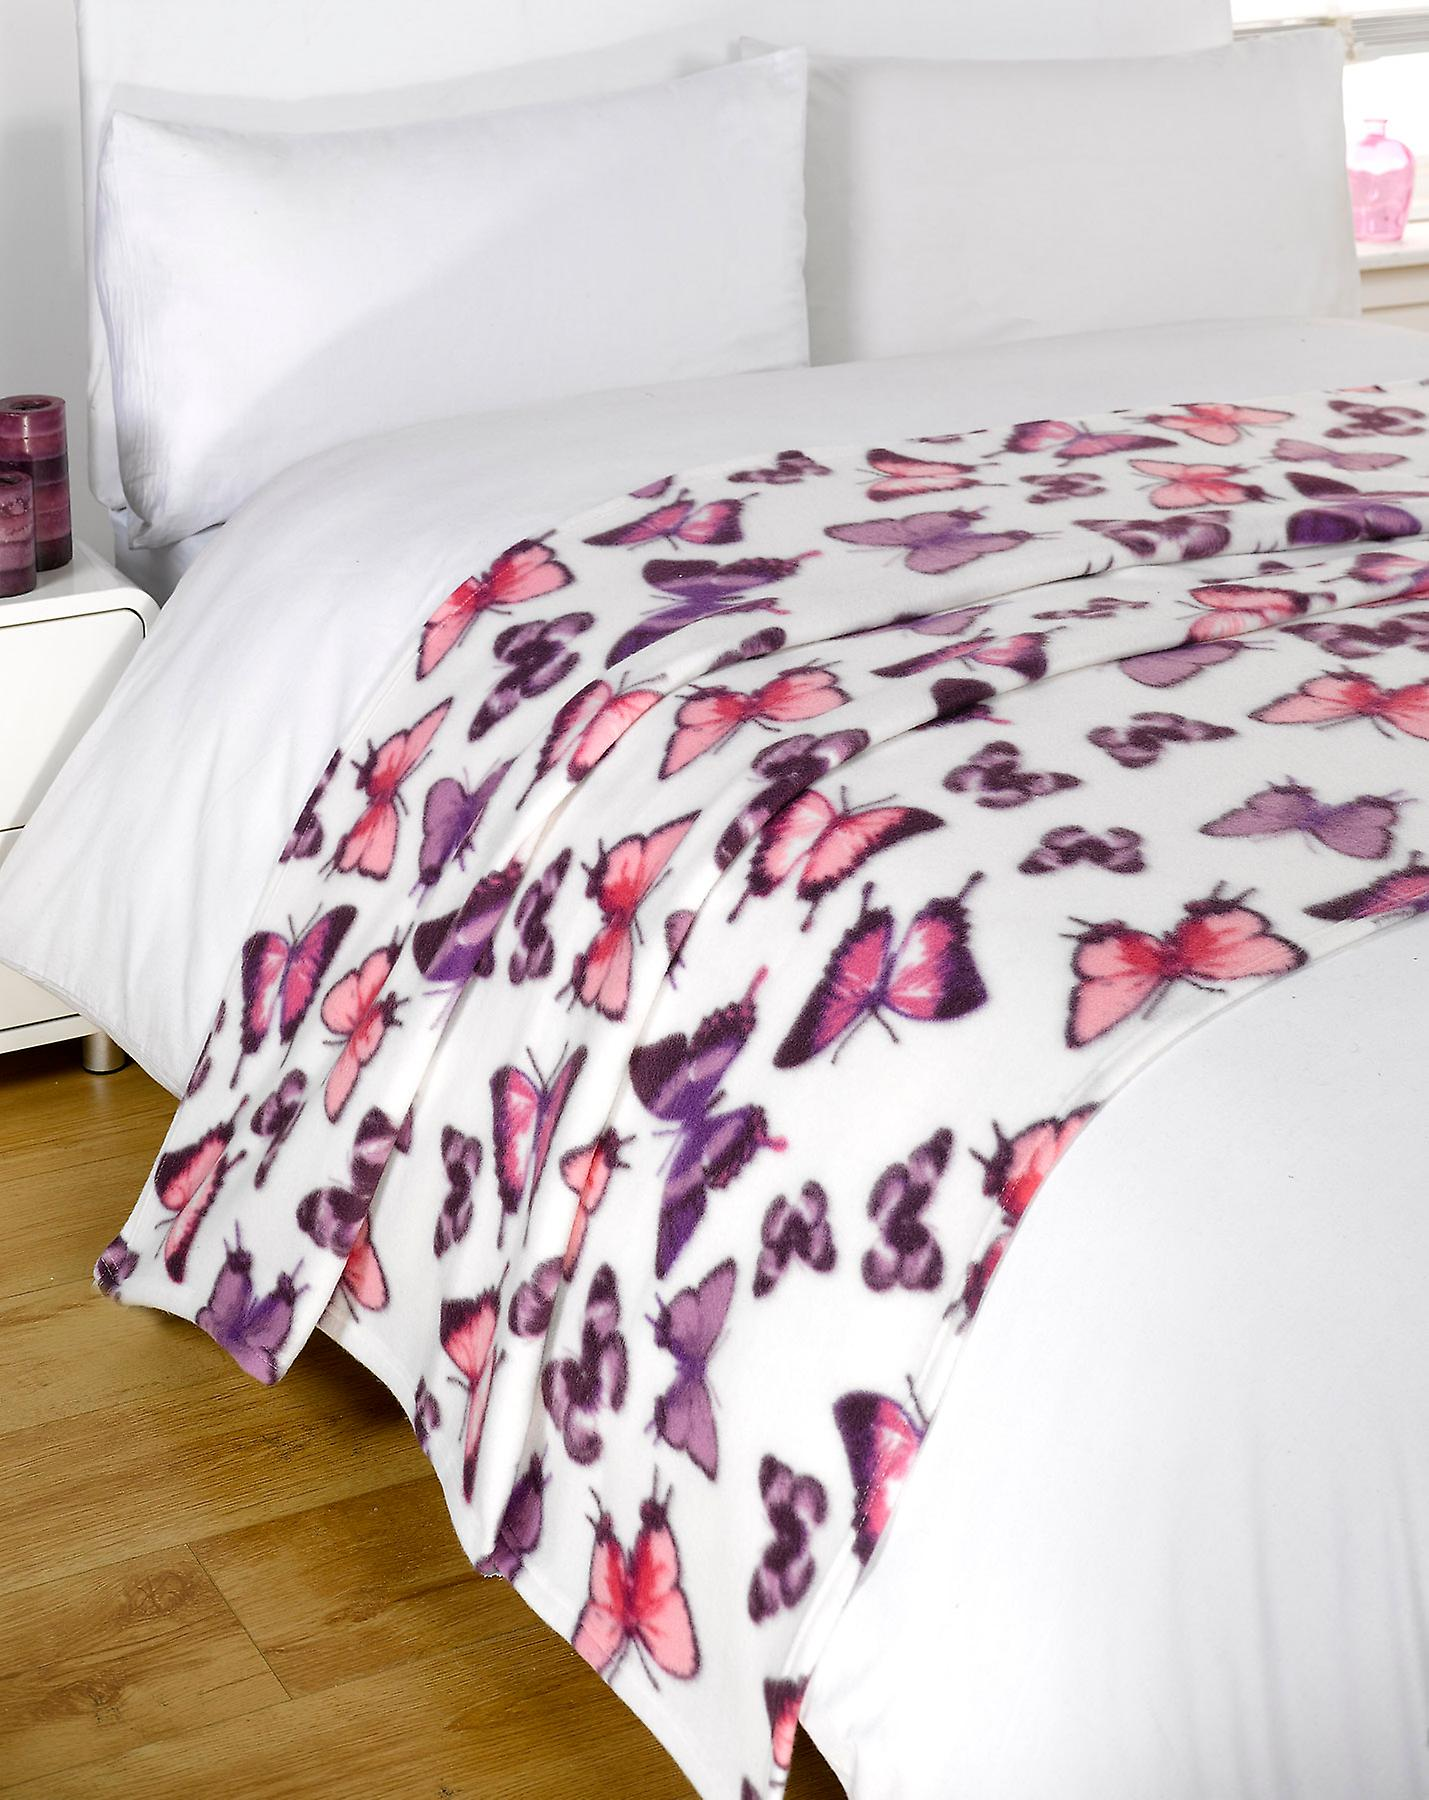 Bed Deken 20 X Fleece Throw Over Job Veel Bed Deken Butterfly Groothandel Paars 120 X 150